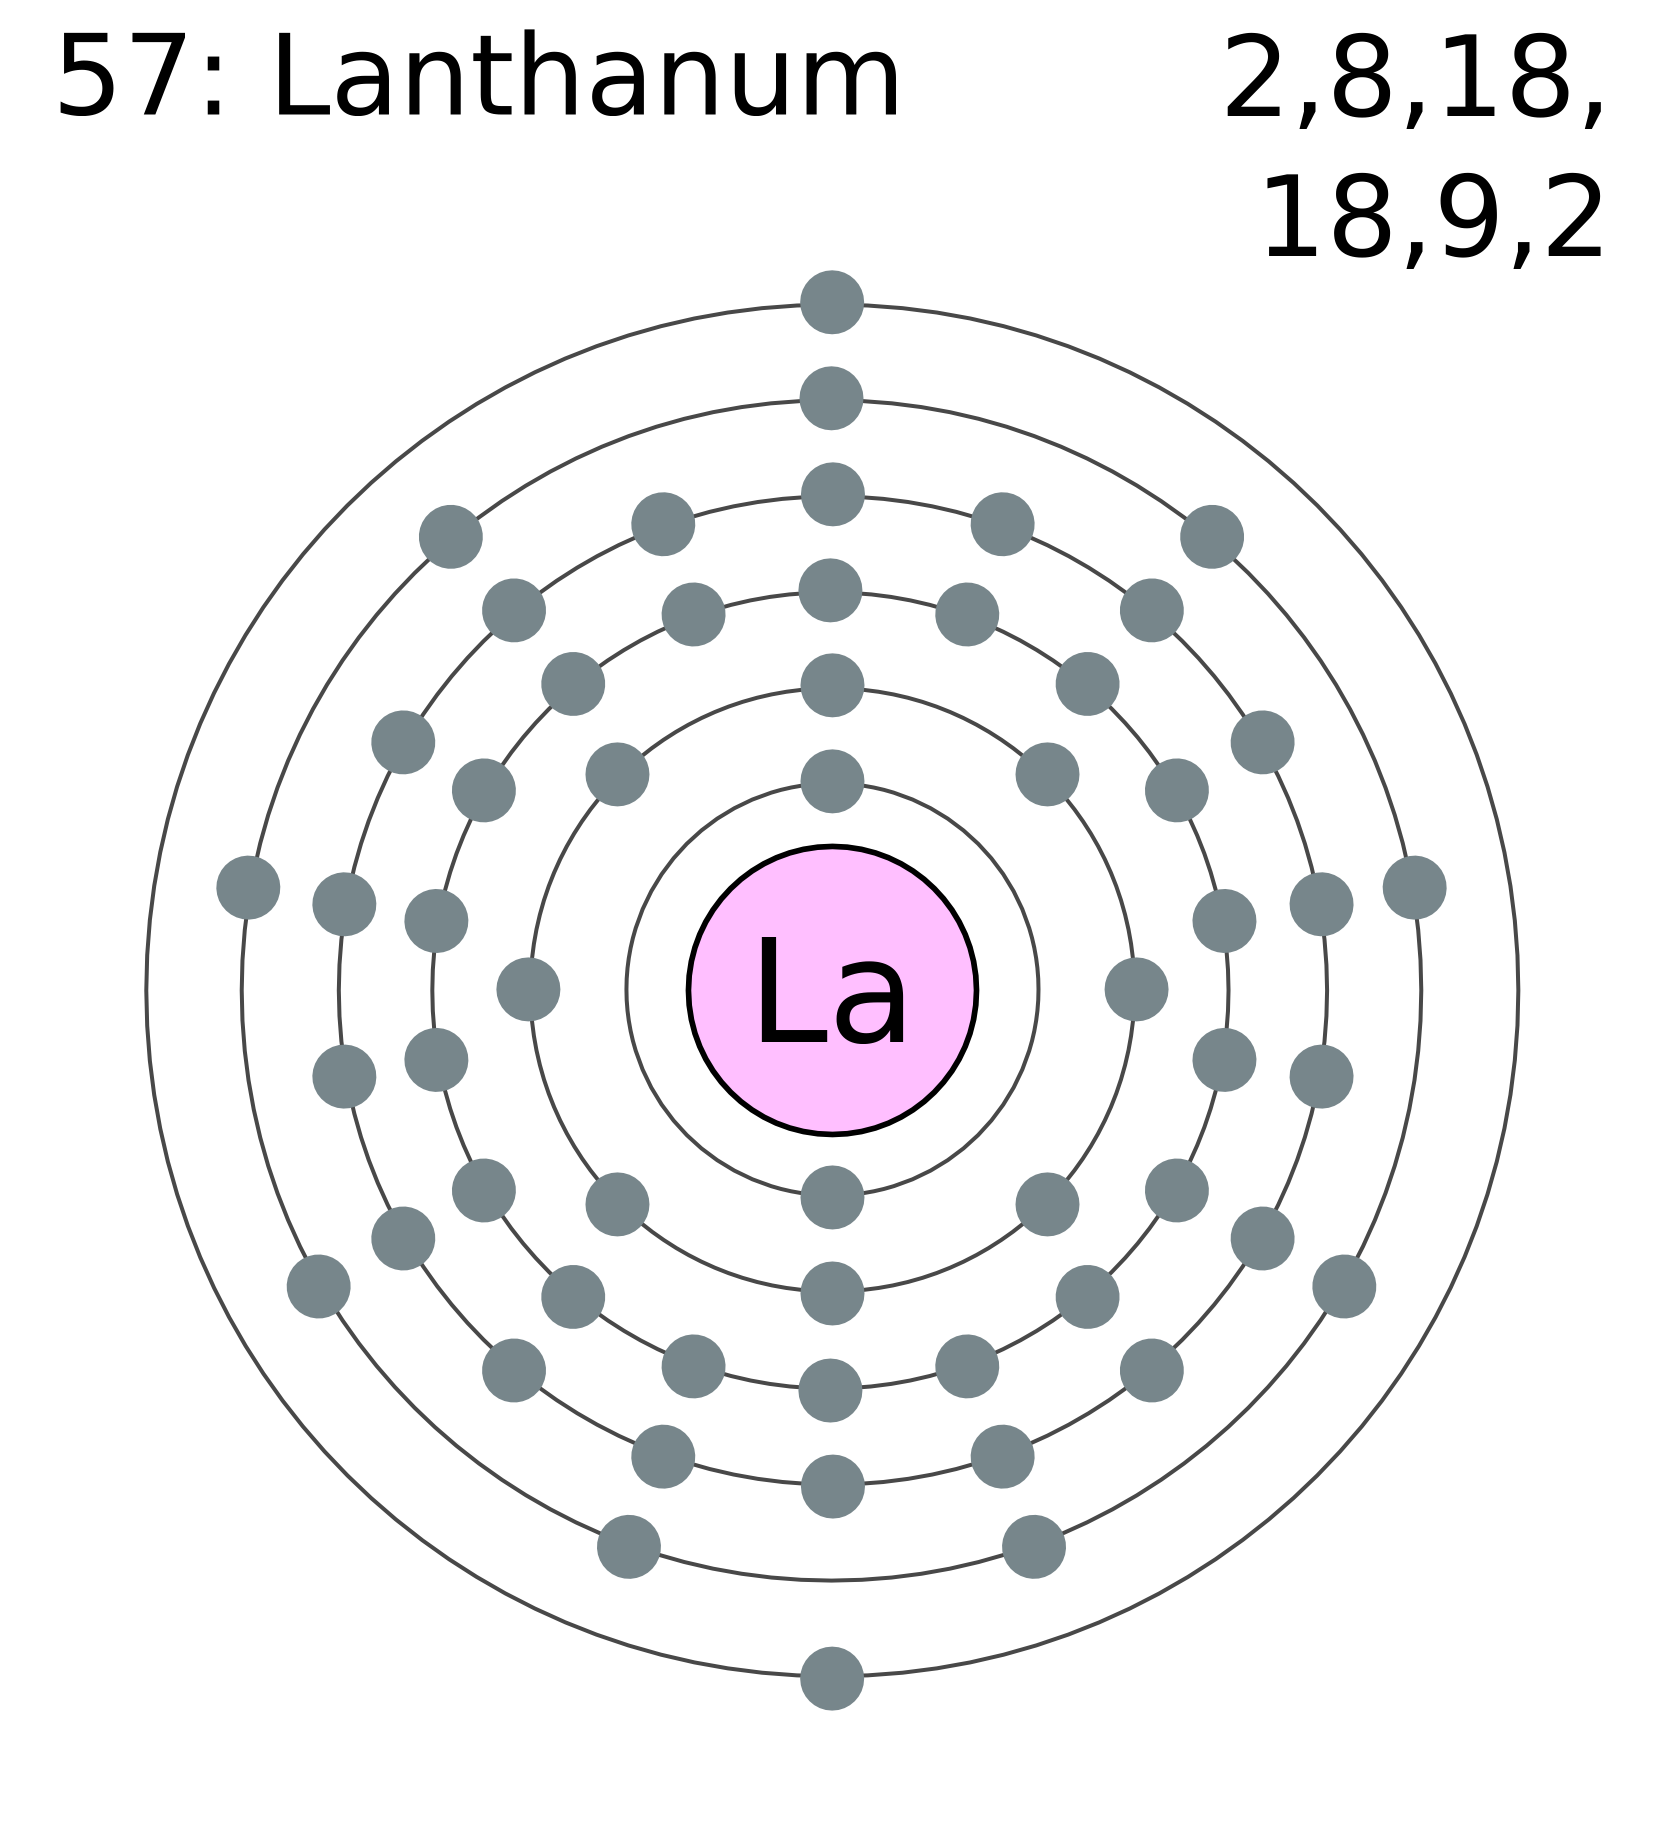 Bohr Diagram Lanthanum Diy Enthusiasts Wiring Diagrams For Oxygen Electron Shells Configuration Chemistry File Shell 057 Wikimedia Commons Rh Org Nitrogen